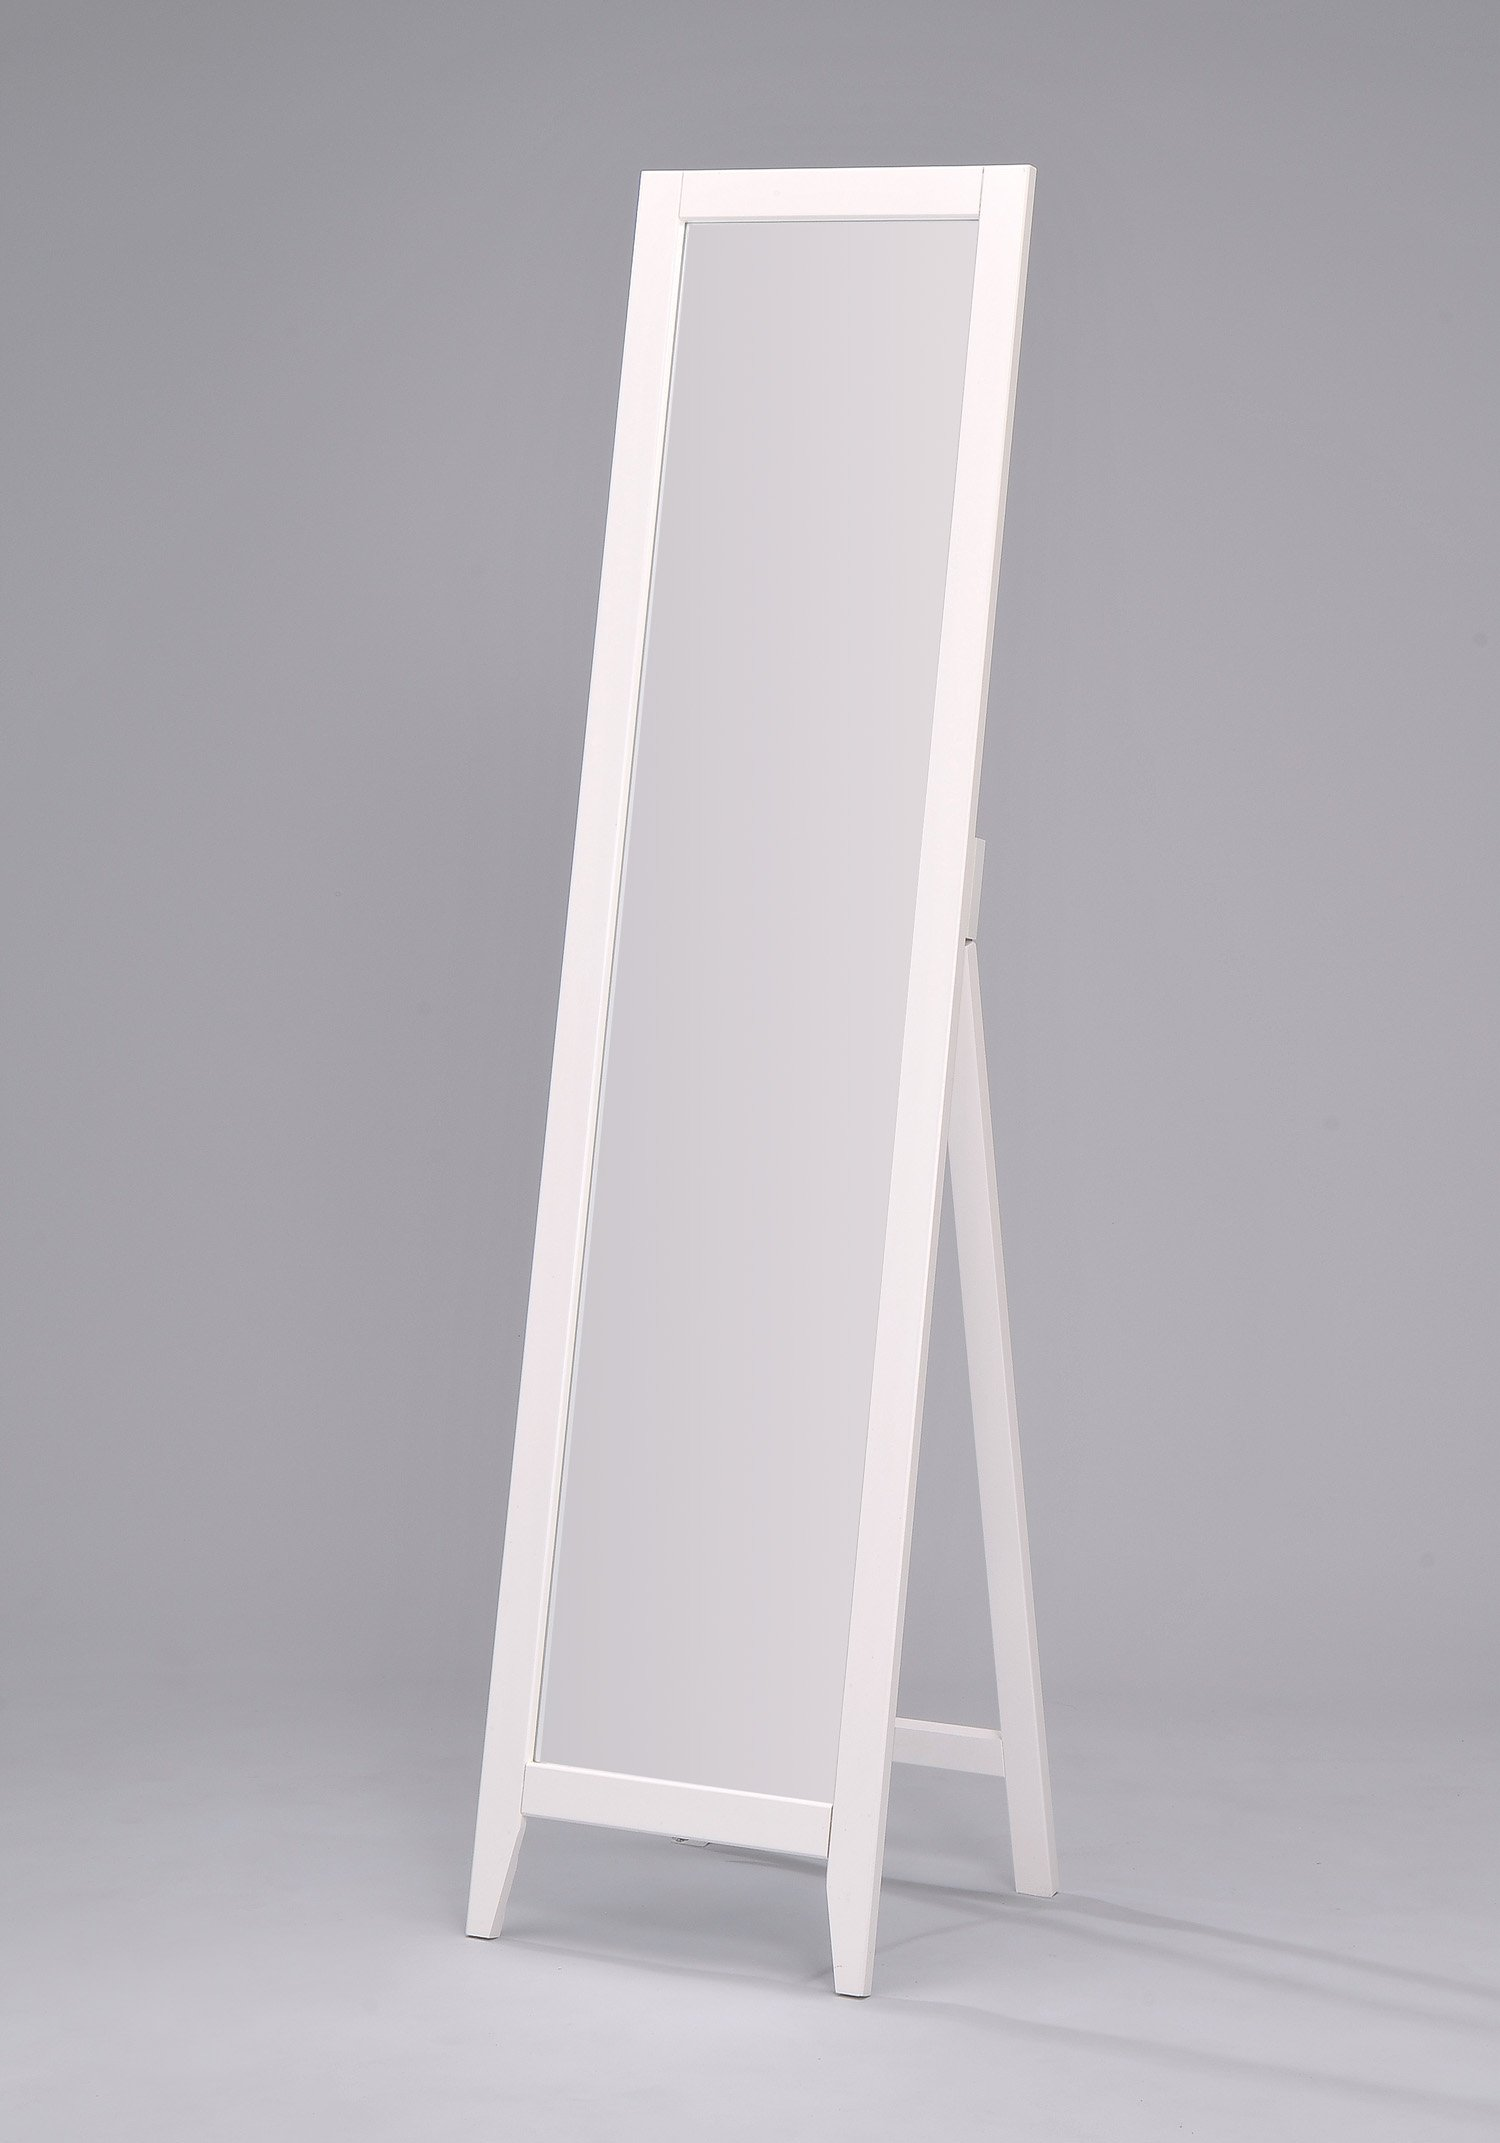 King's Brand Furniture - White Finish Solid Wood Frame Free Standing Floor Mirror